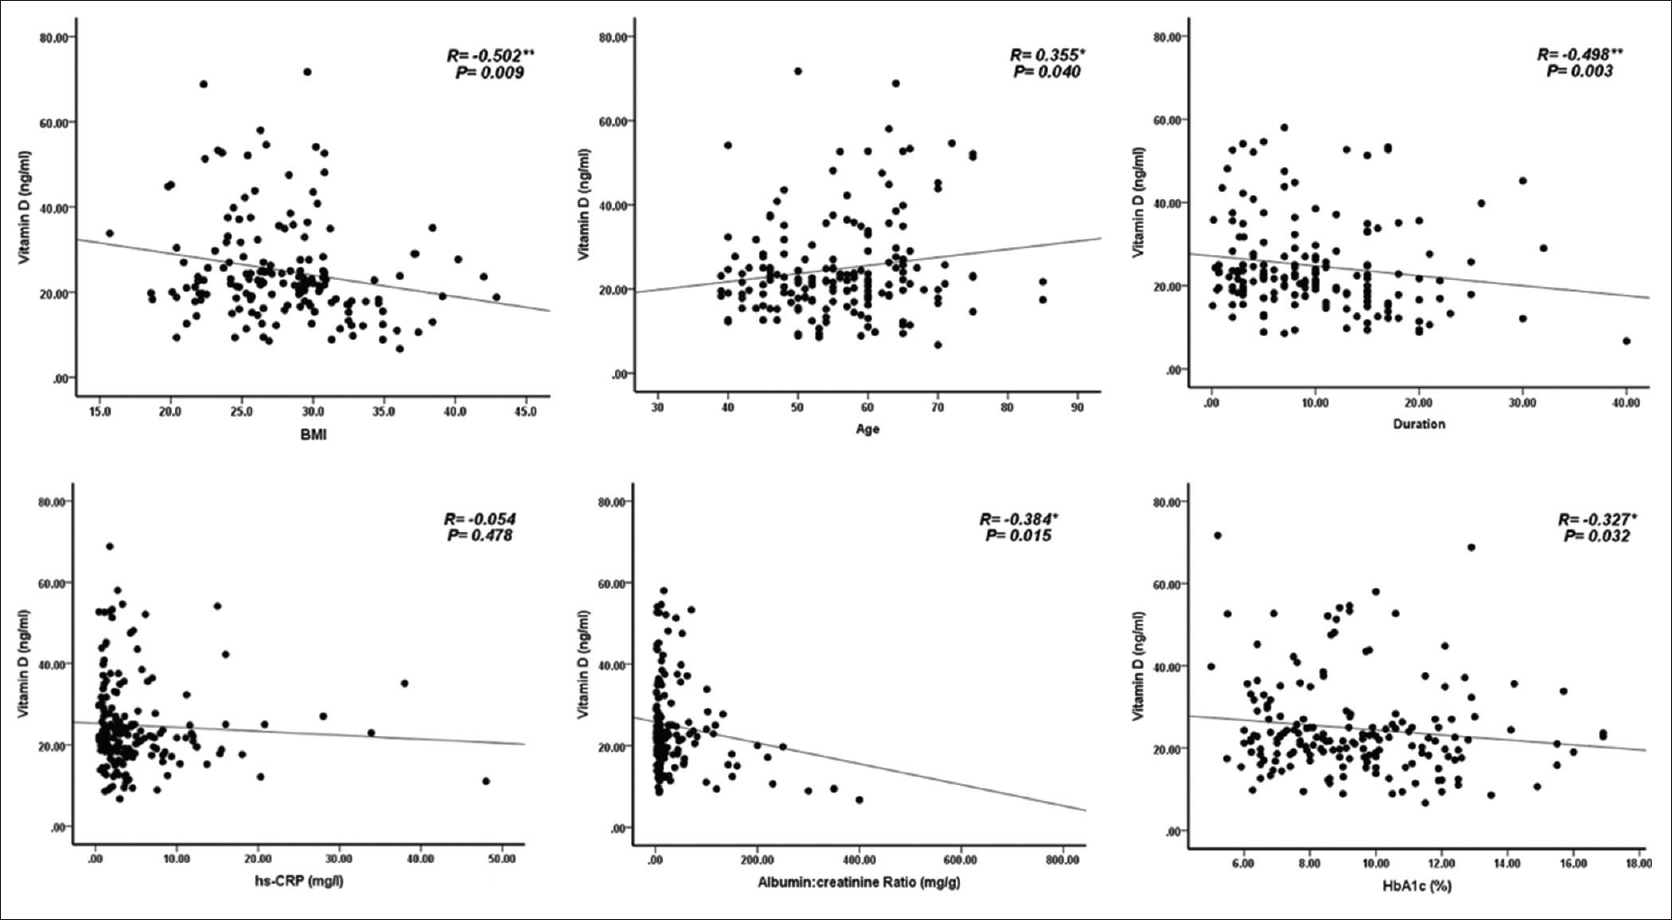 hight resolution of original article vitamin d deficiency increases risk of nephropathy and cardiovascular diseases in type 2 diabetes mellitus patients